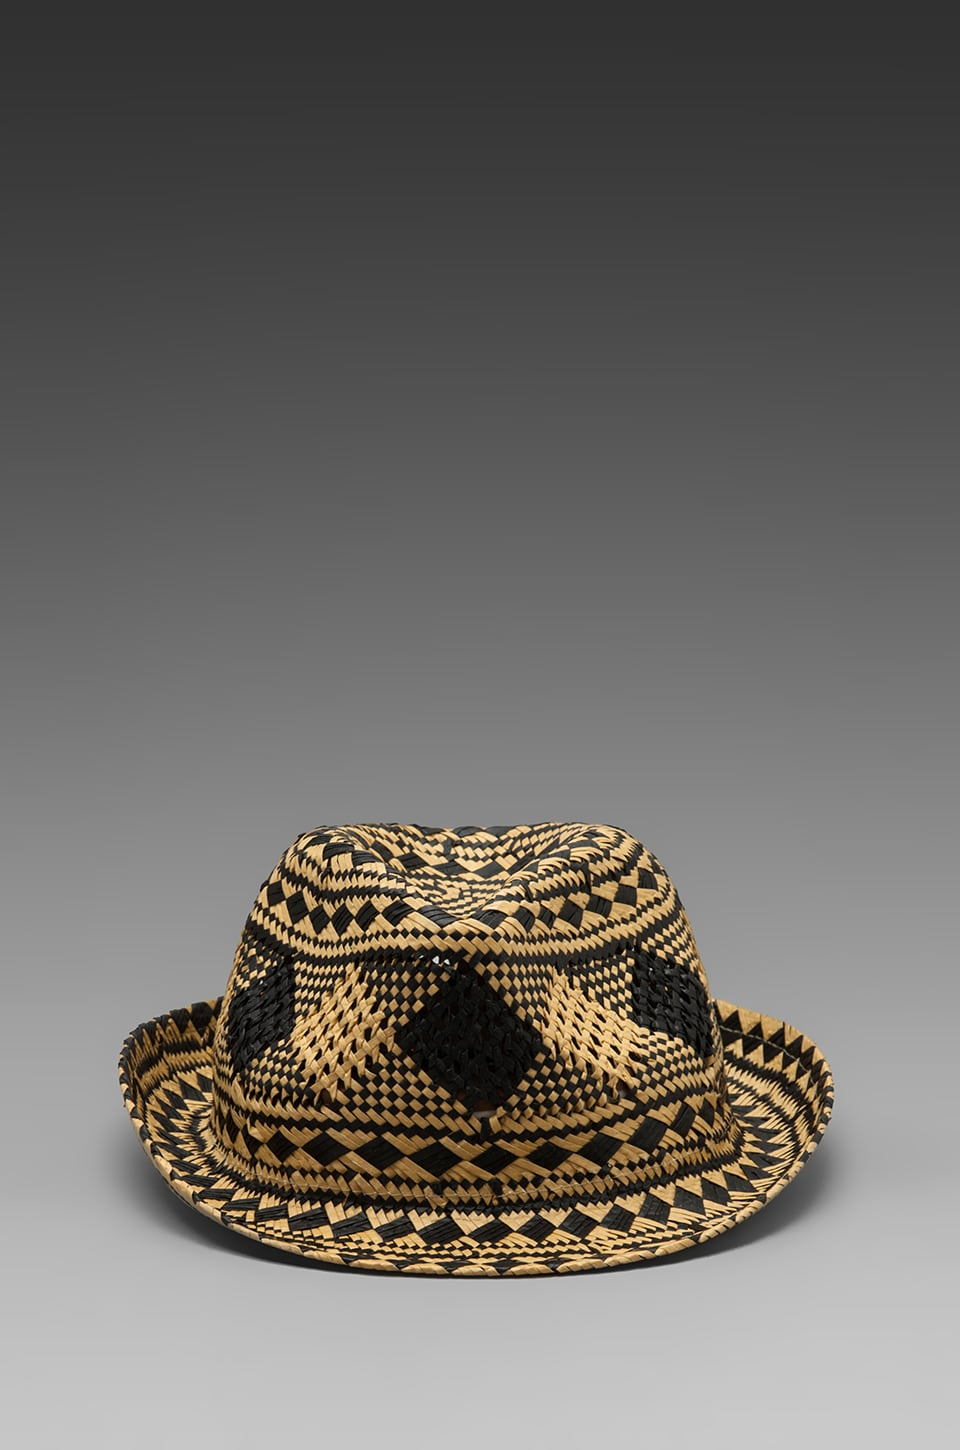 Scotch & Soda Straw hat in Black/Beige